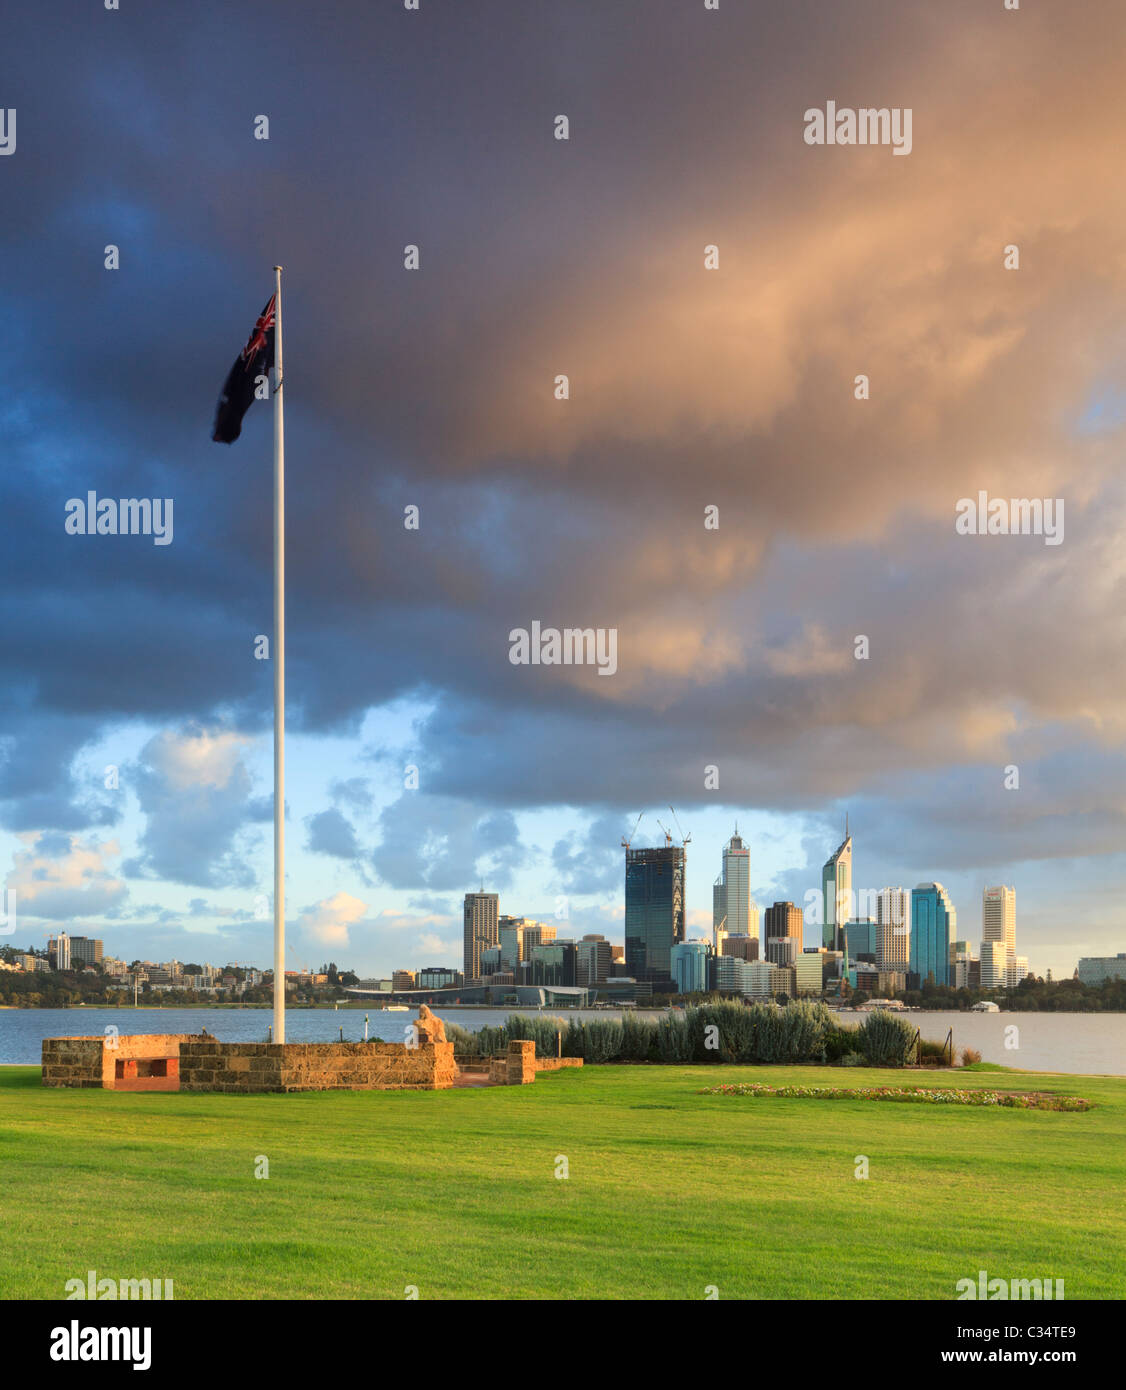 Drapeau australien à Sir James Mitchell Park, South Perth survolant la ville de Perth au lever du soleil. Photo Stock